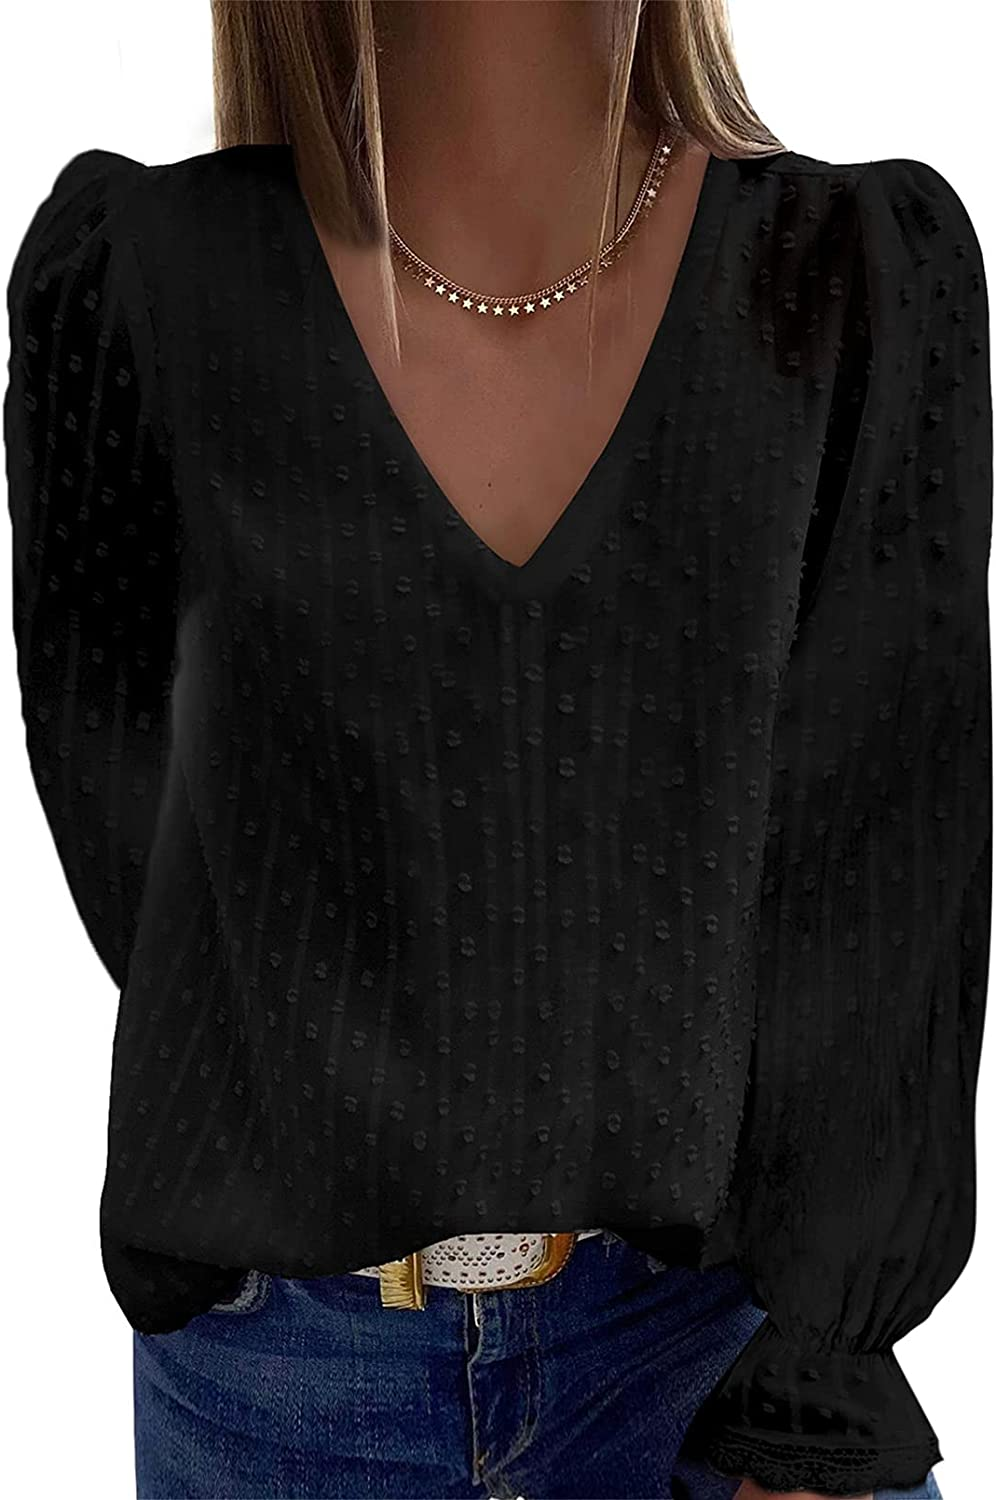 Itsmode Swiss Dot V Neck Blouses for Women Long Sleeve Casual Loose Chiffon Fall Tops